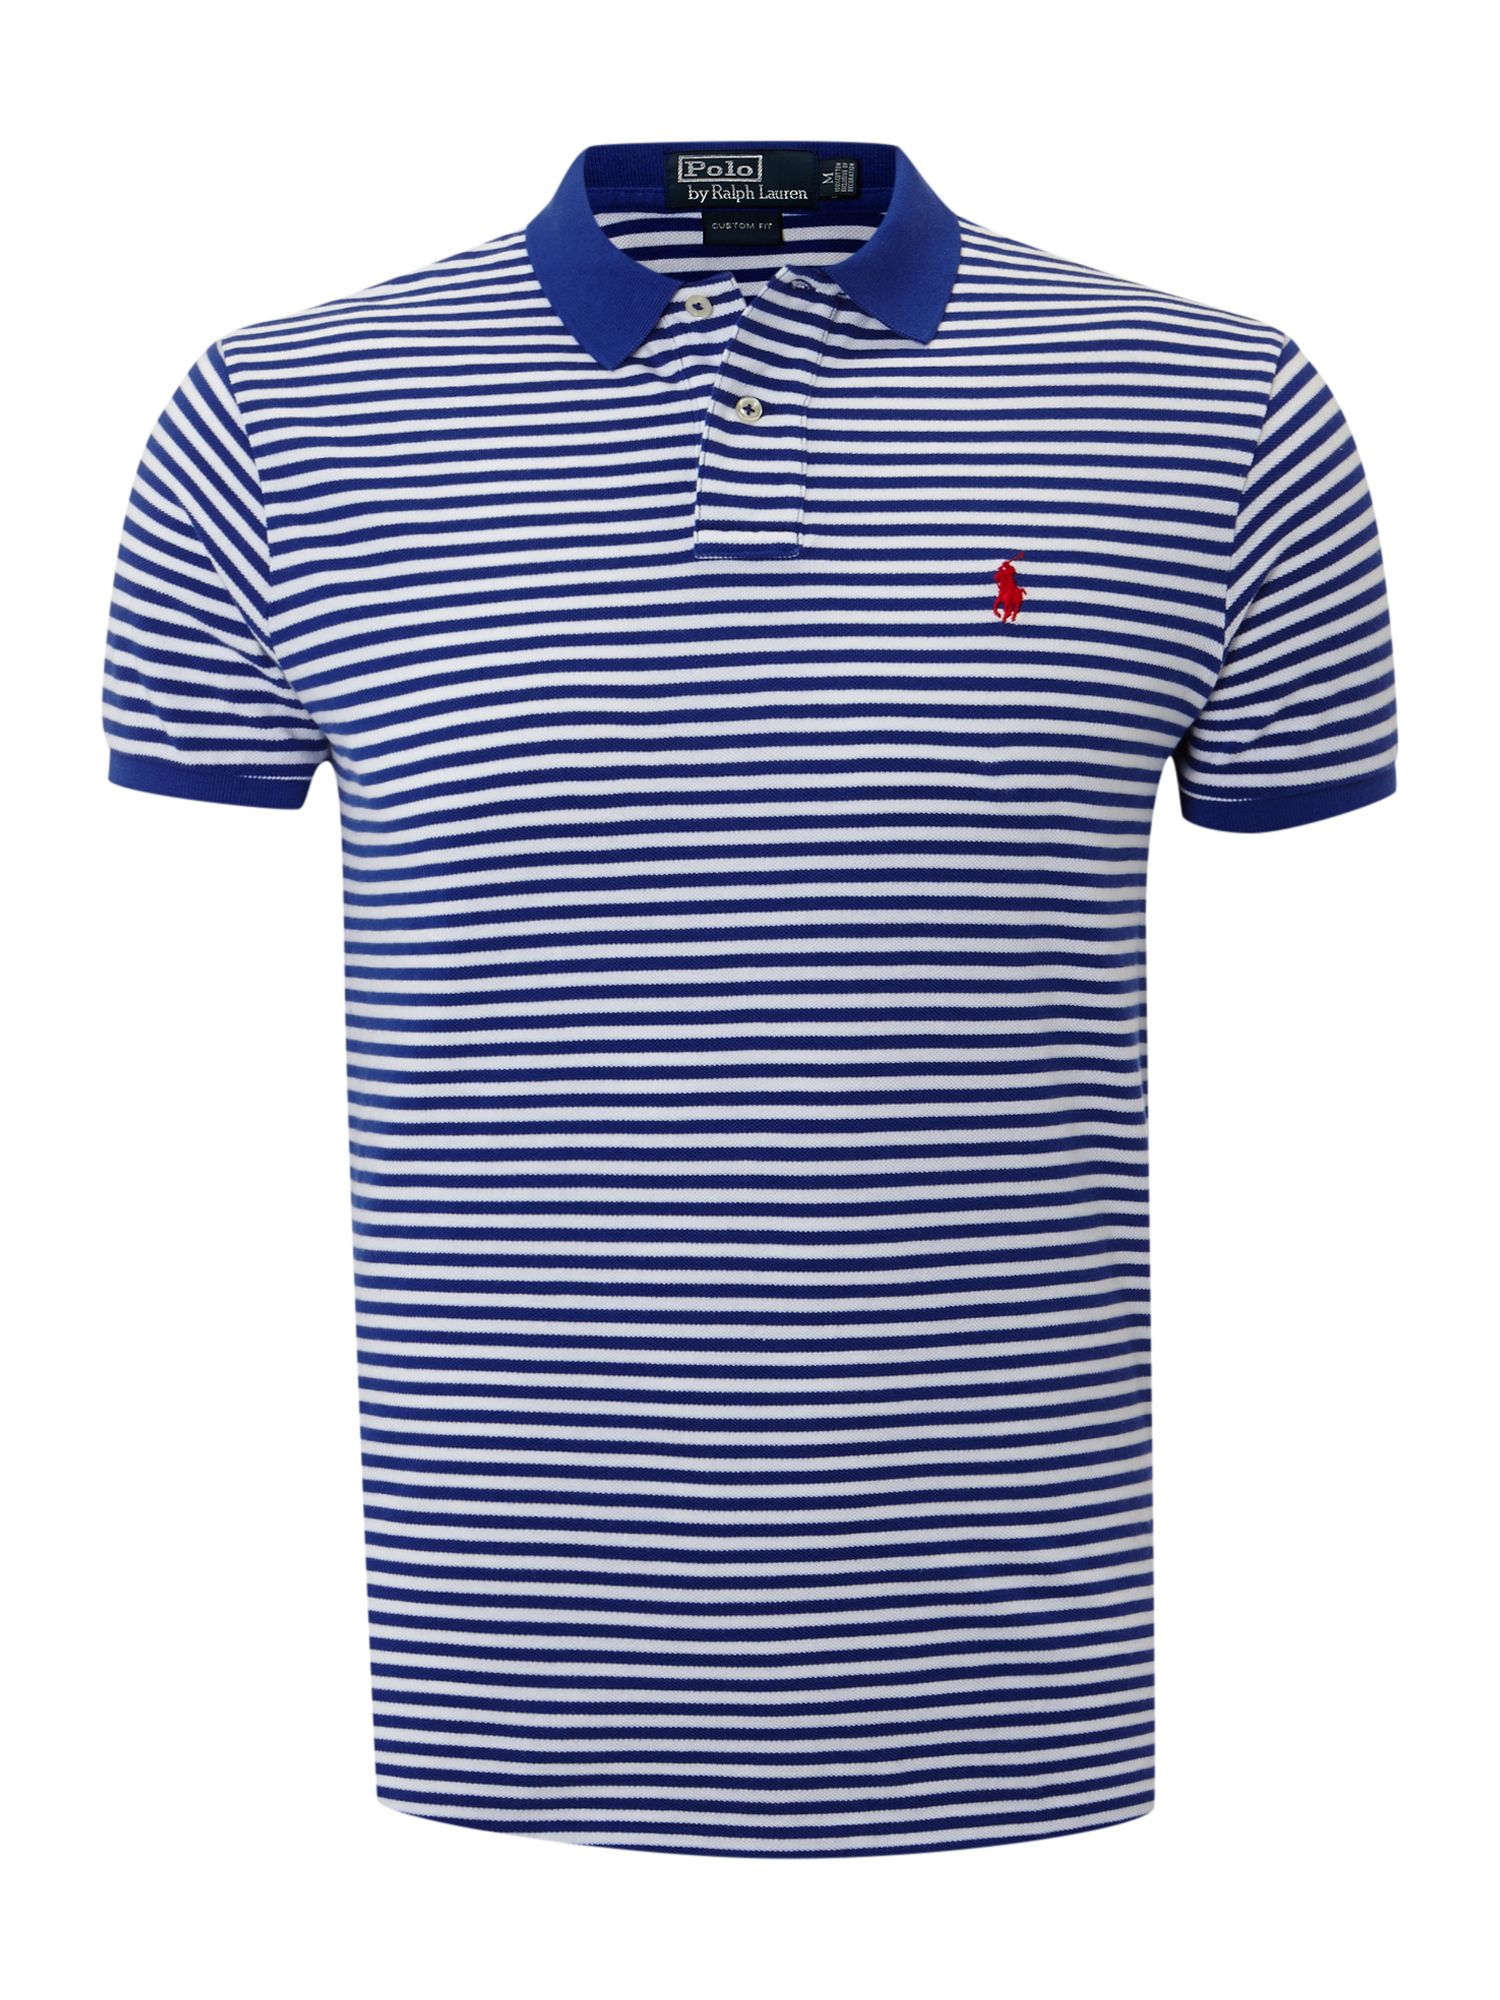 Polo ralph lauren three big pony slim fitted polo shirt in for White fitted polo shirts